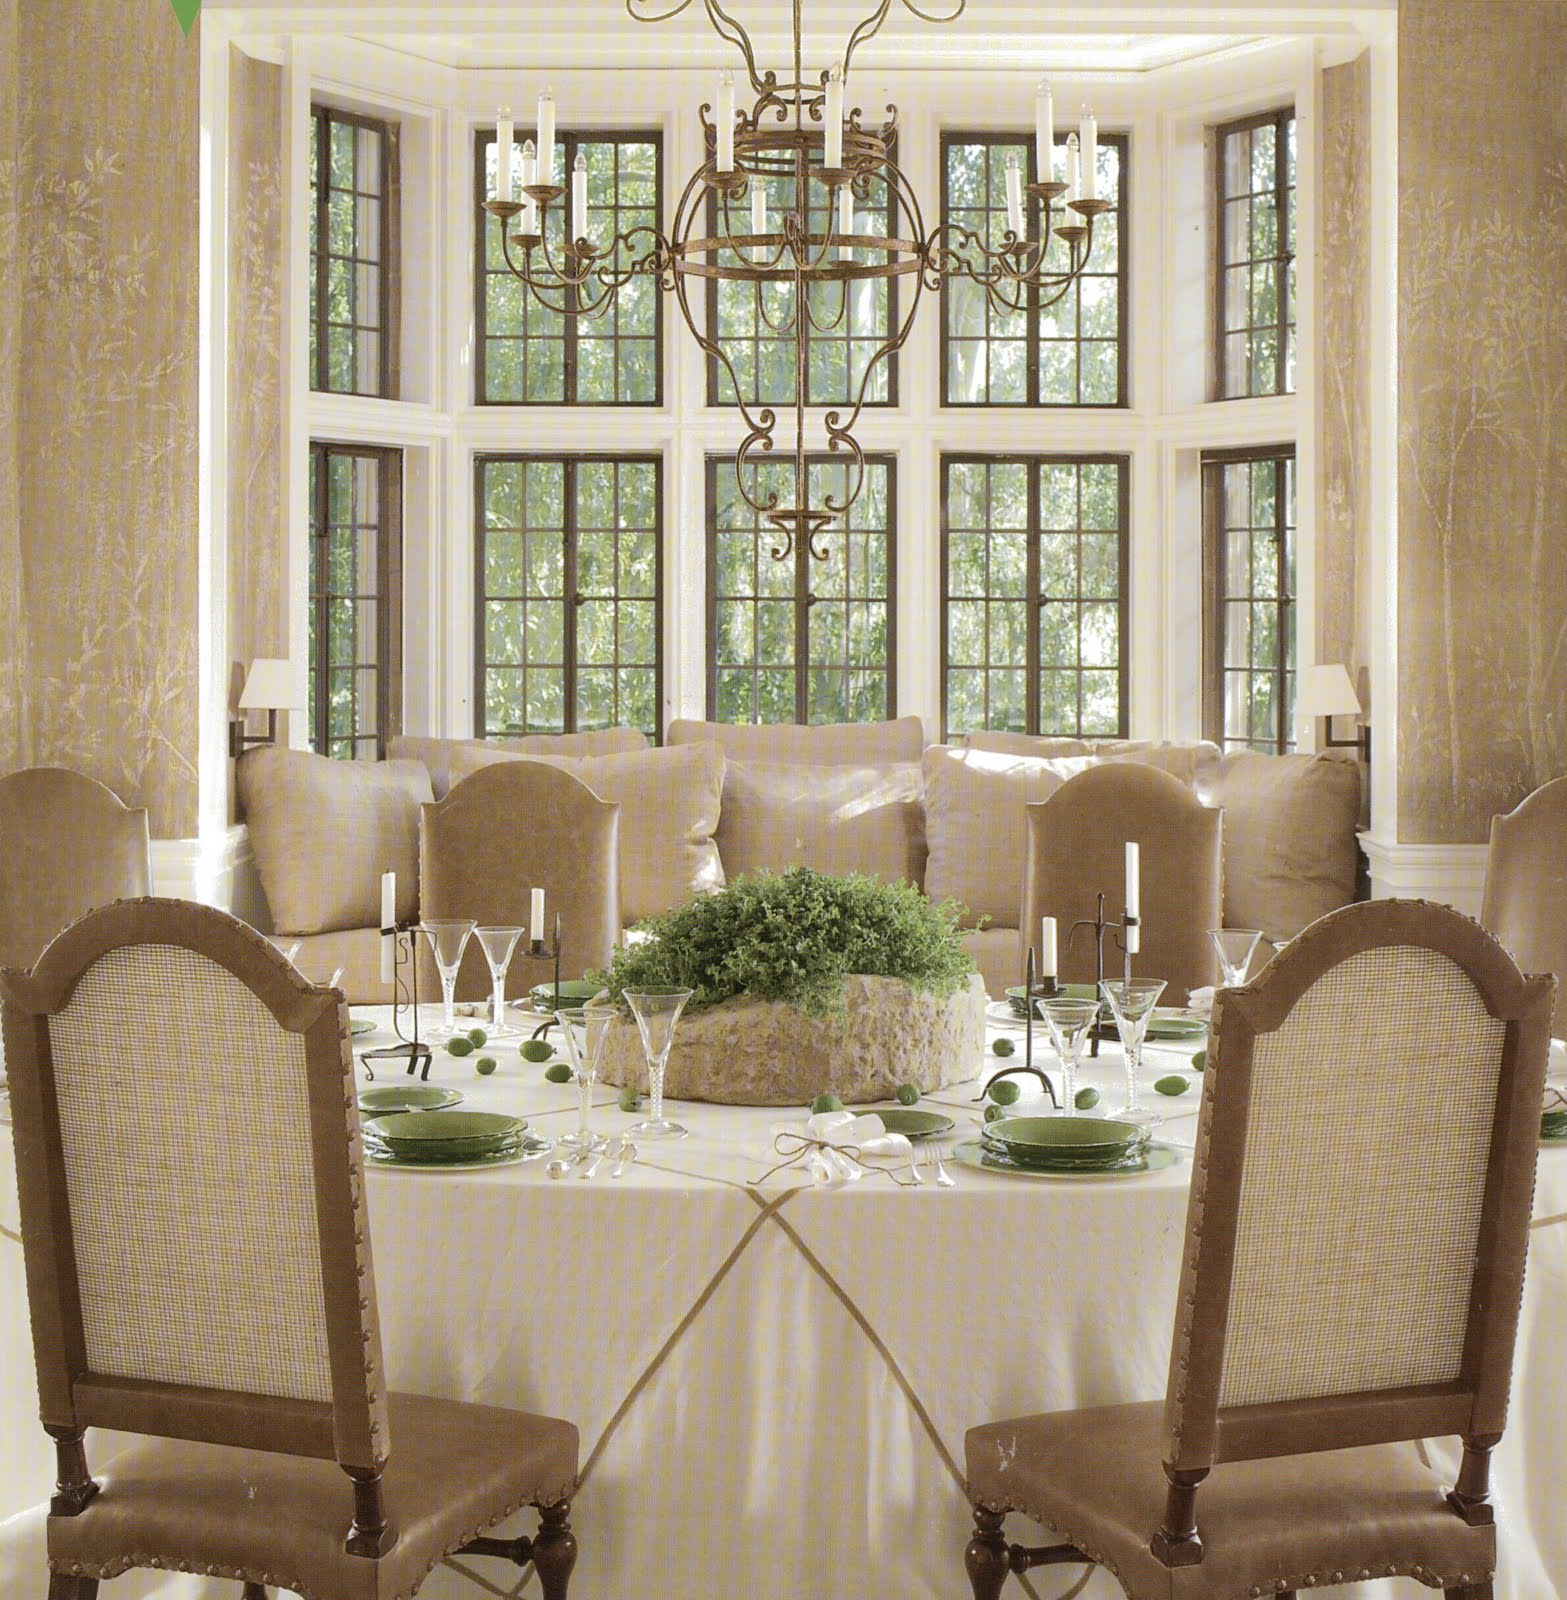 Home Design Ideas Bay Window: P.S. I Love This...: Ideas For Dining Room